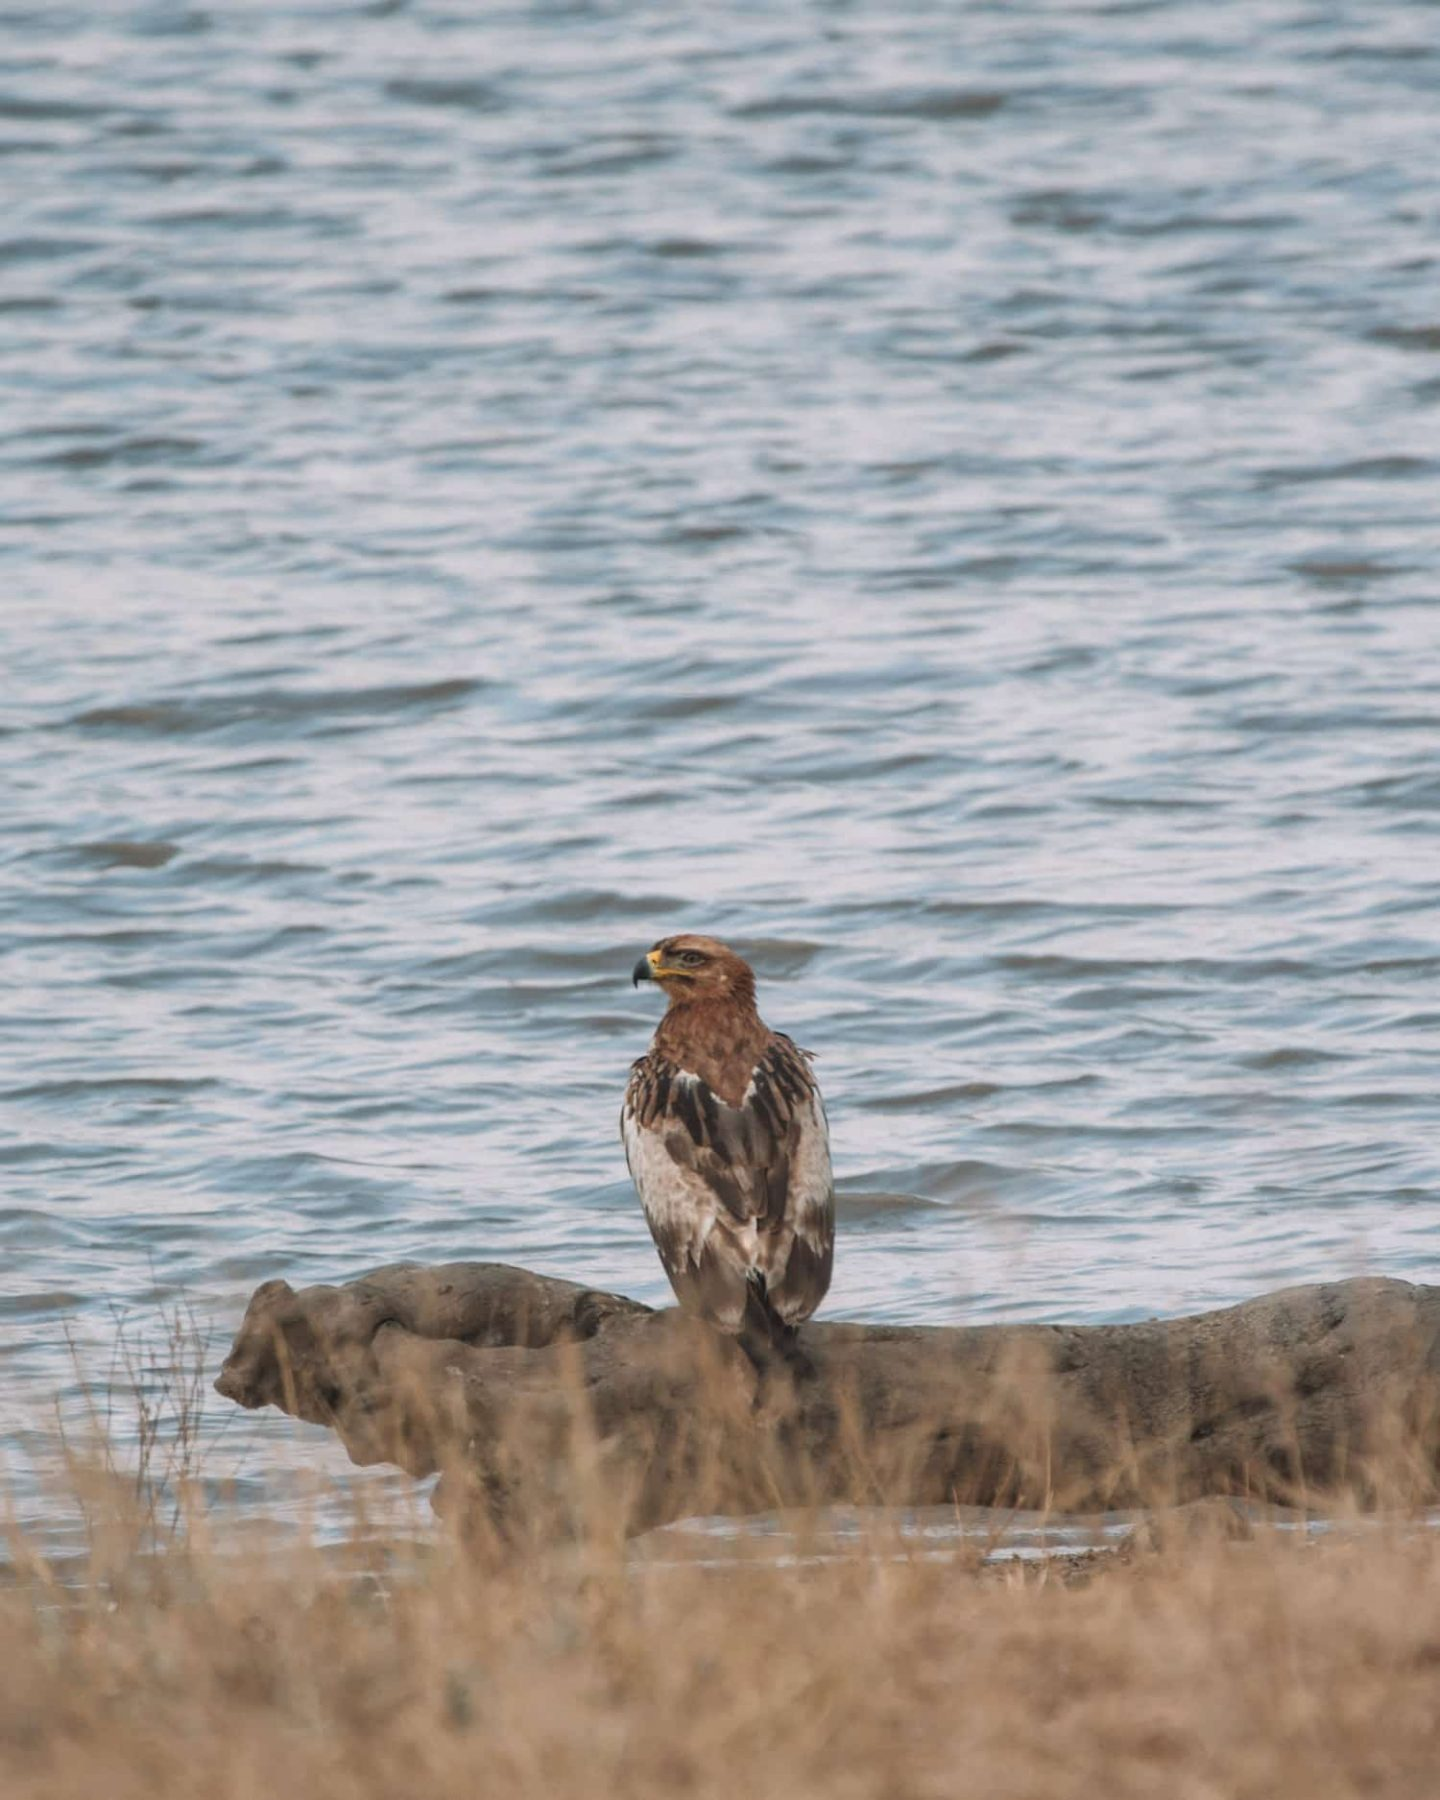 eagle by lake